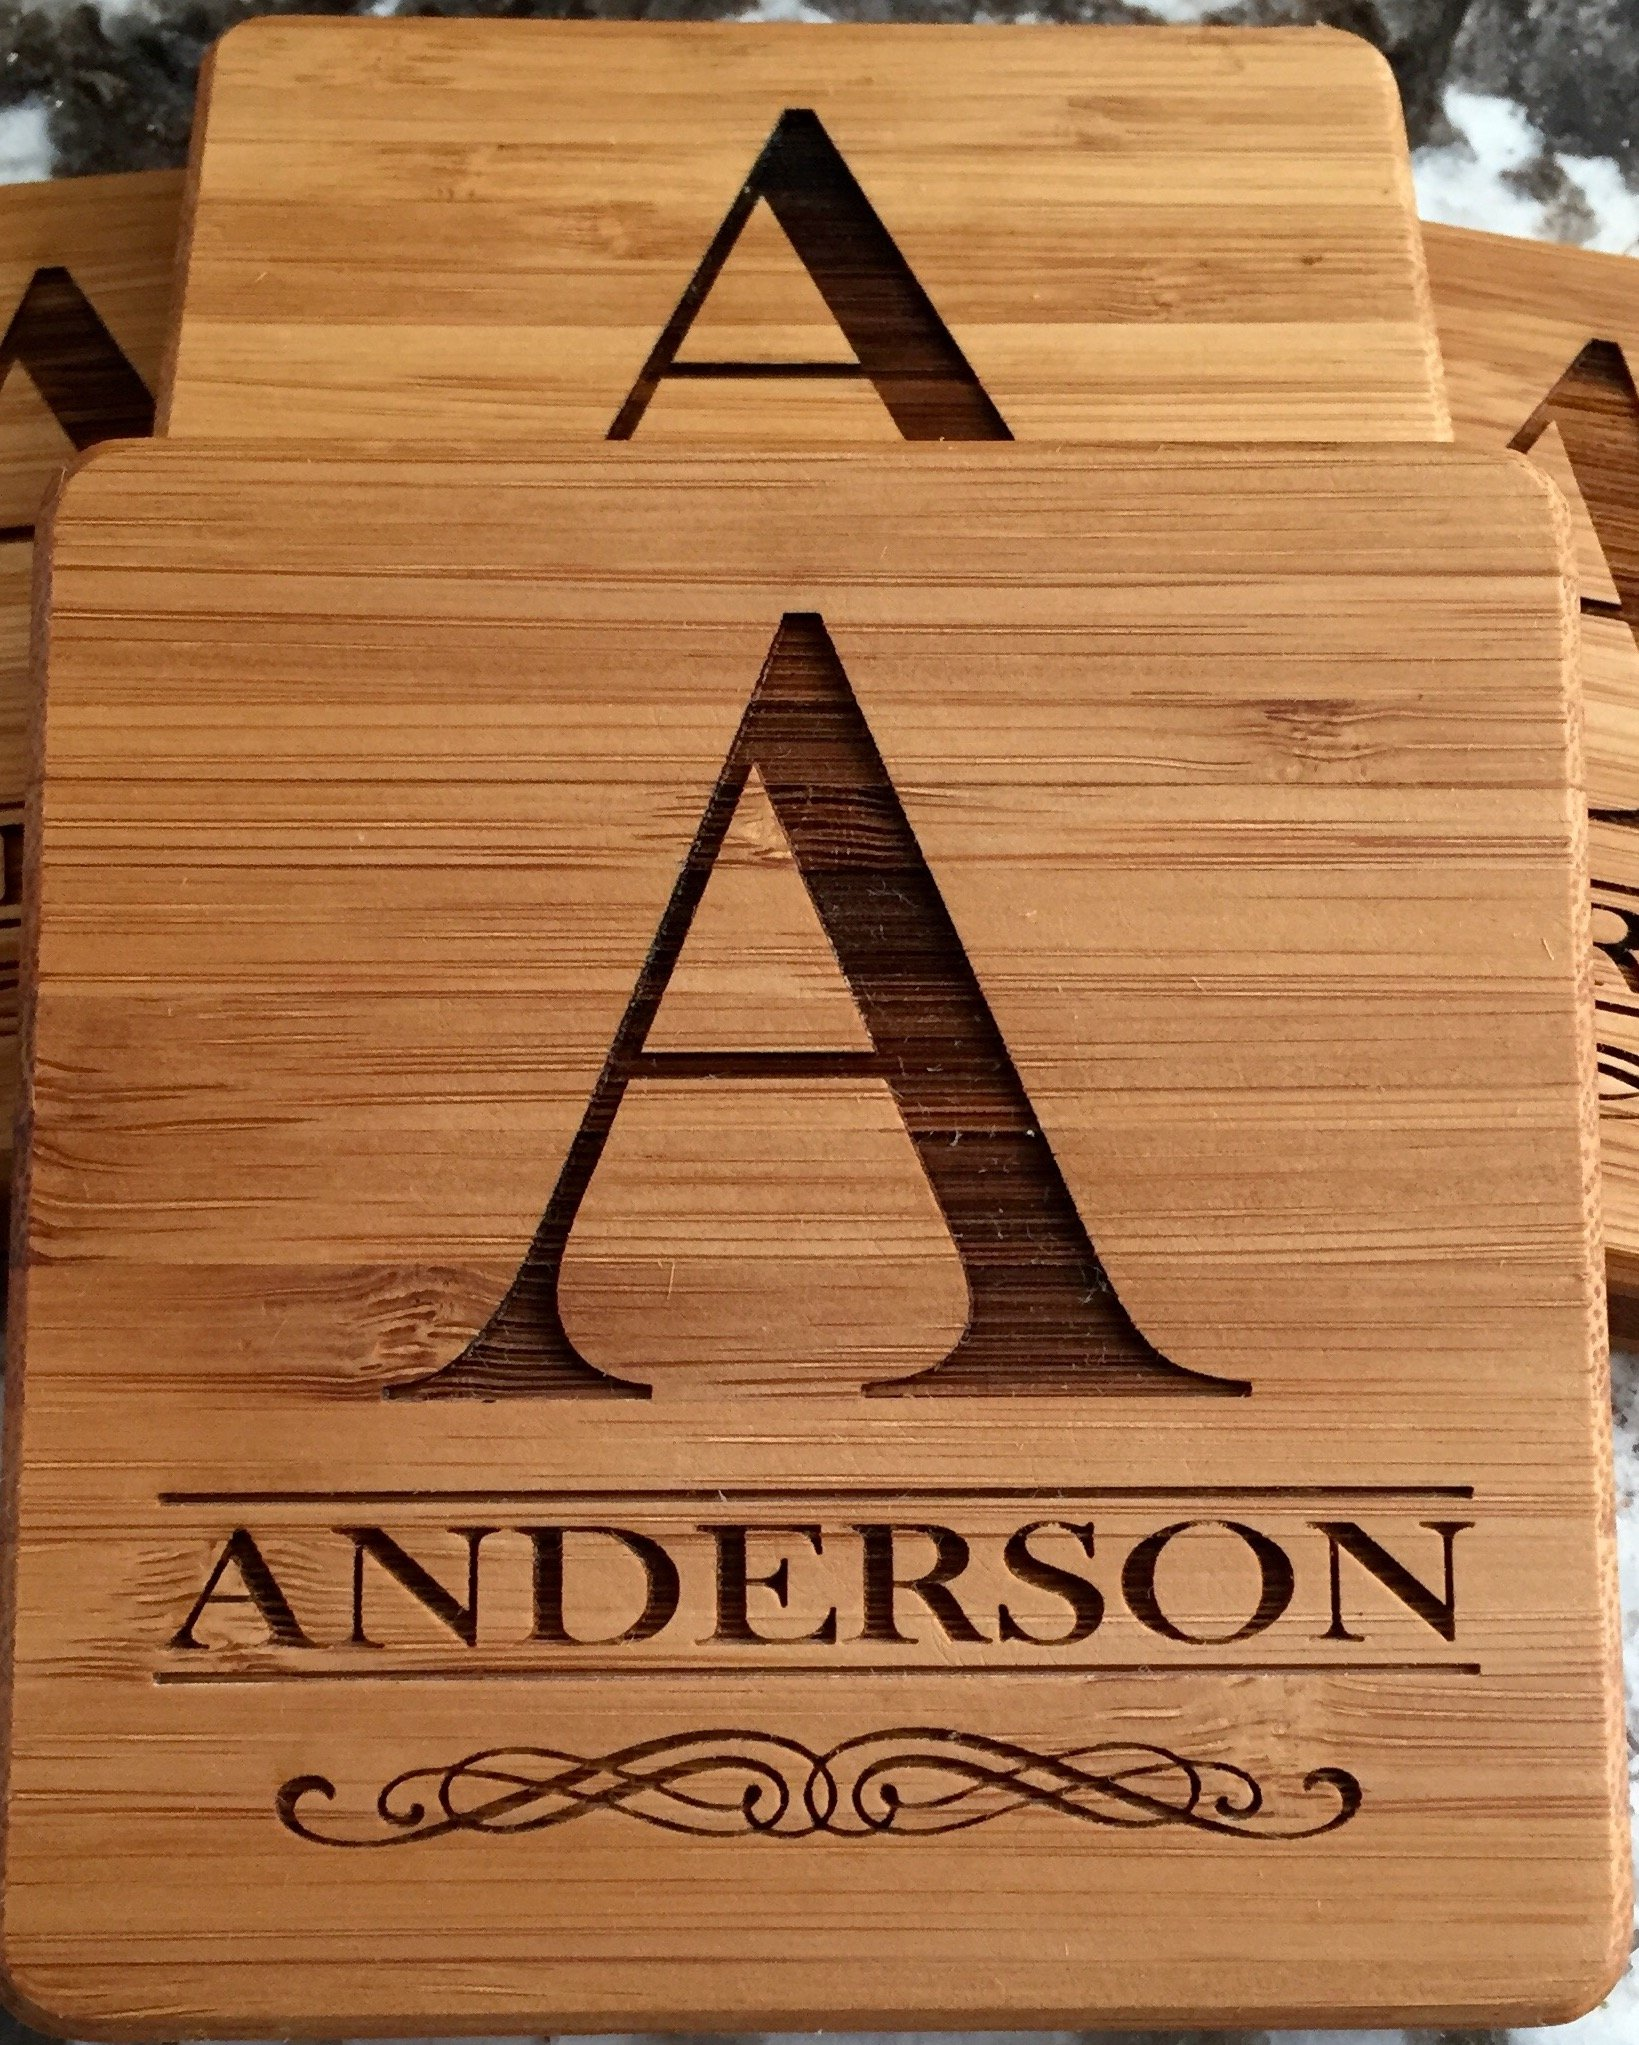 Monogram Wood Coasters for Drinks - Personalized Wedding Gifts, Bridal Shower Gifts (Set of 2, Anderson Design)